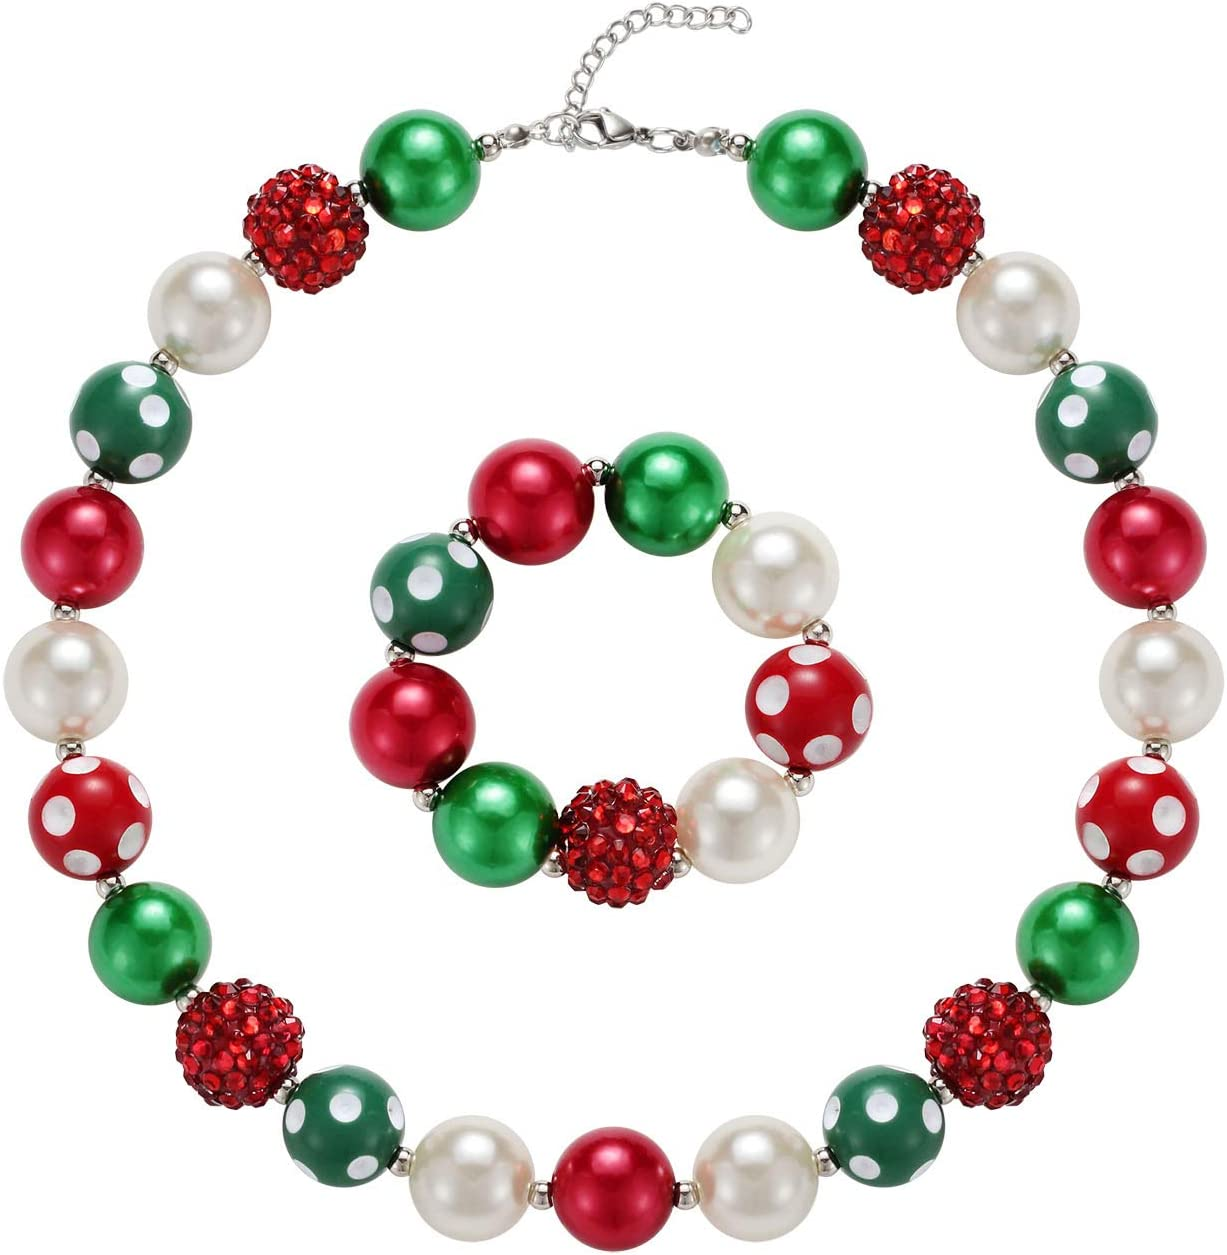 Girls Adjustable Chunky Bubblegum Necklace Best Gifts for her